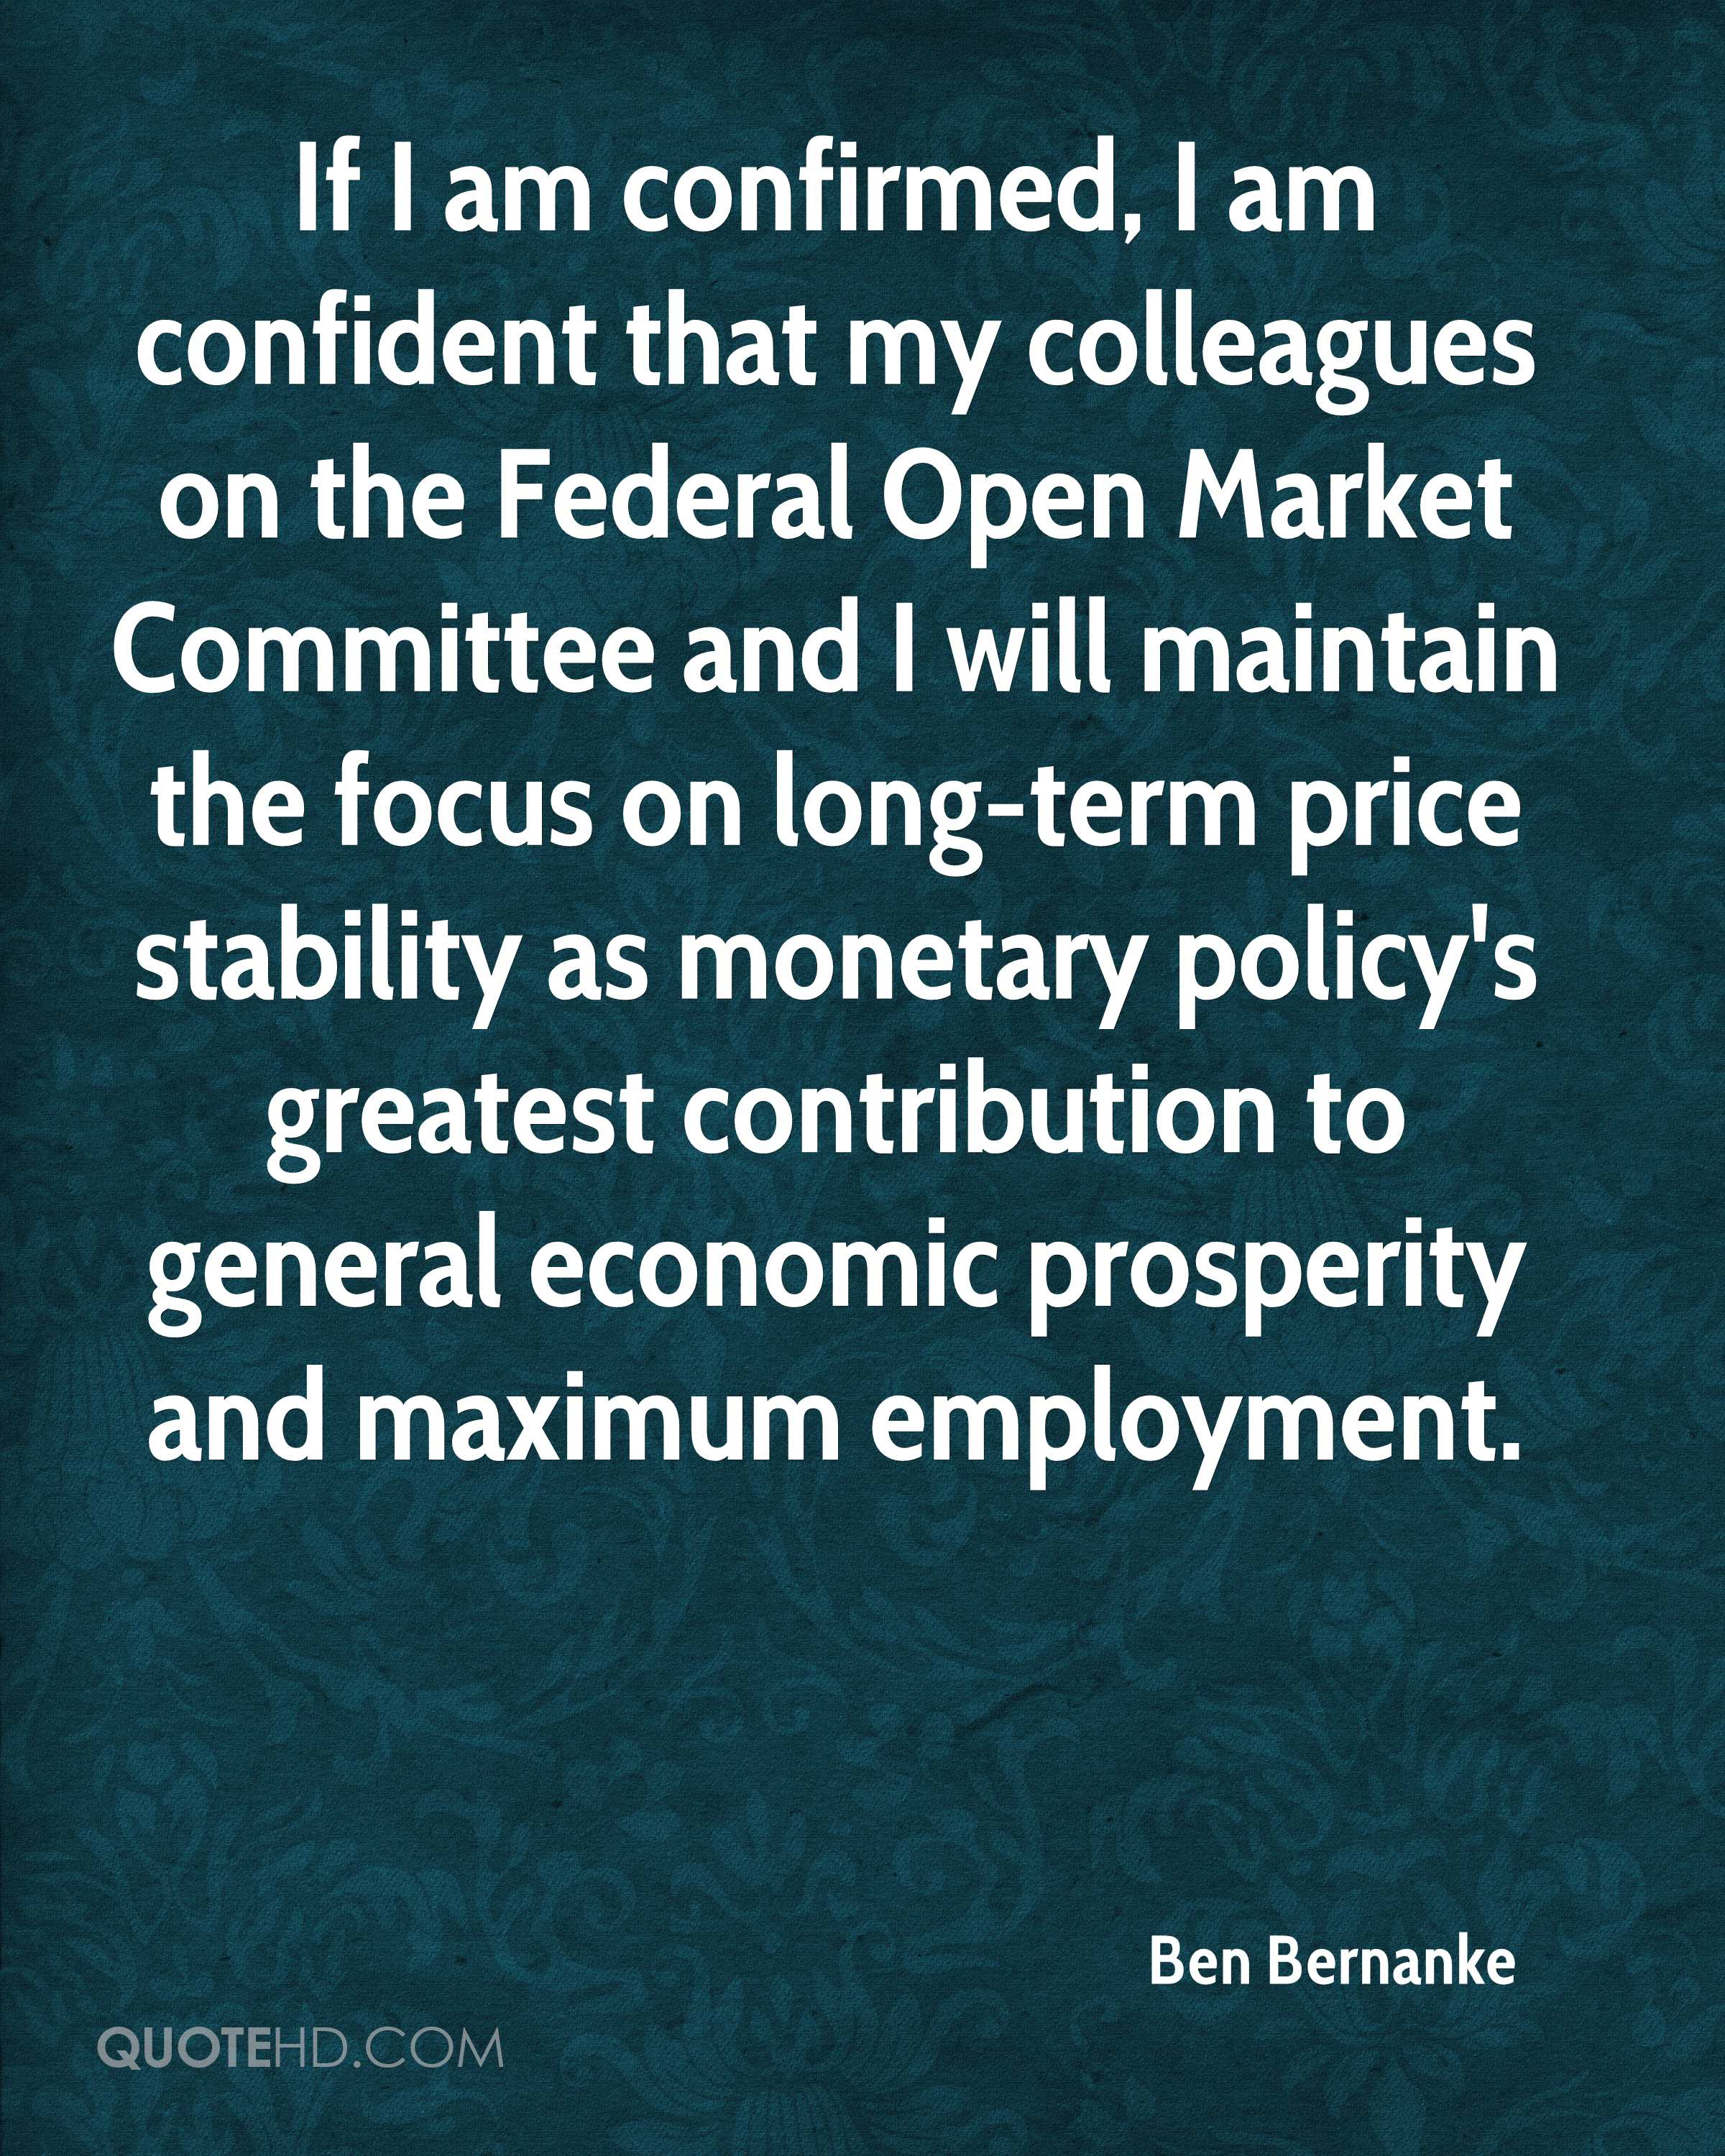 If I am confirmed, I am confident that my colleagues on the Federal Open Market Committee and I will maintain the focus on long-term price stability as monetary policy's greatest contribution to general economic prosperity and maximum employment.